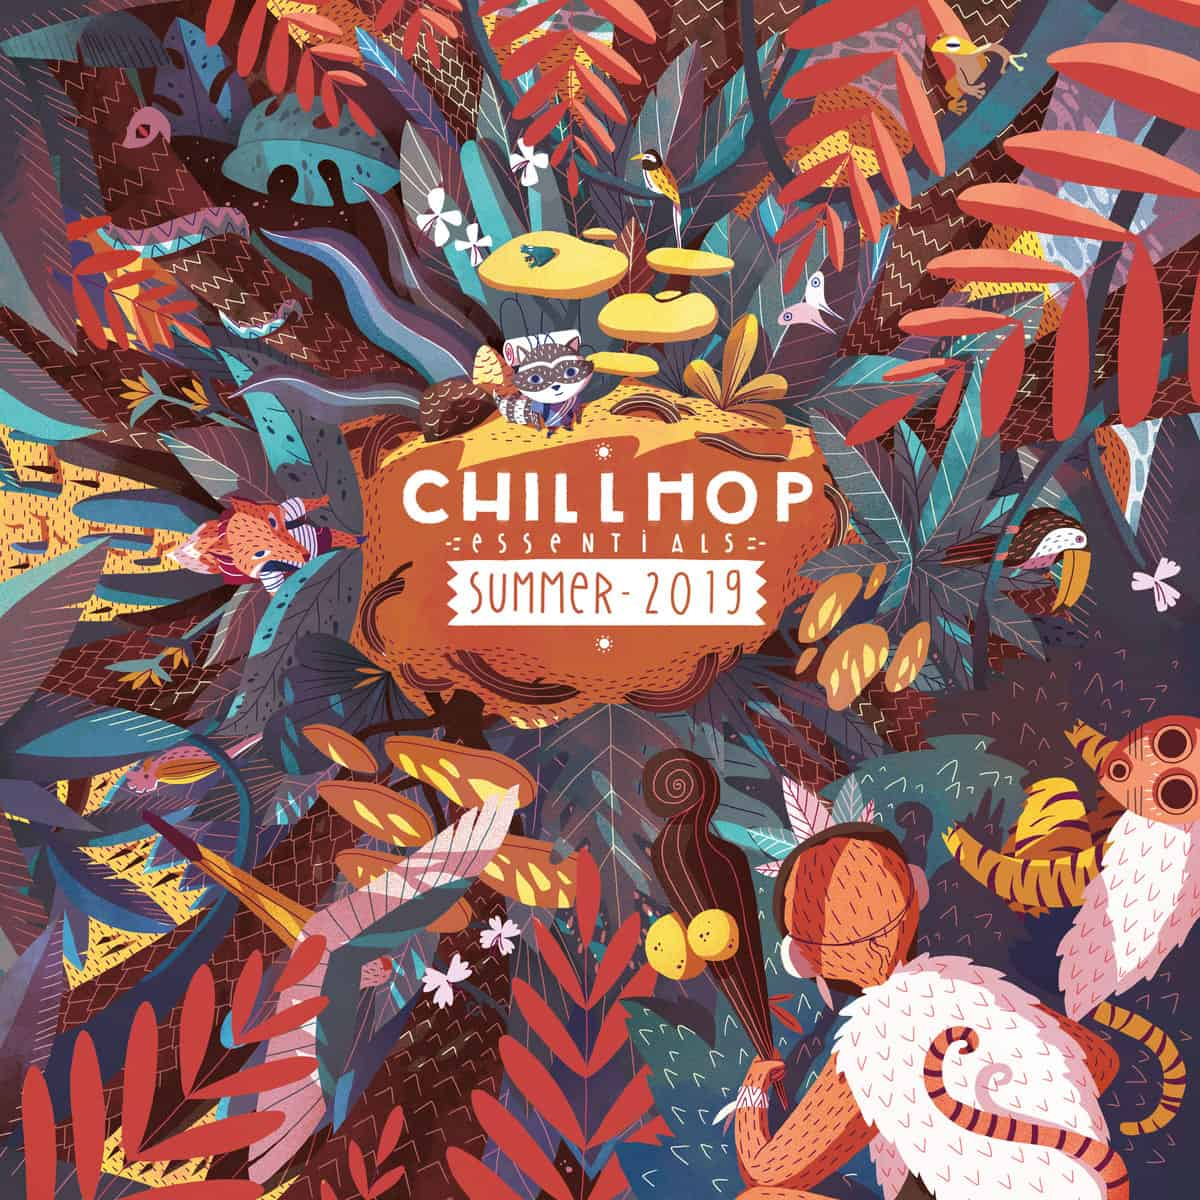 Chillhop Essentials - Summer 2019 - free download